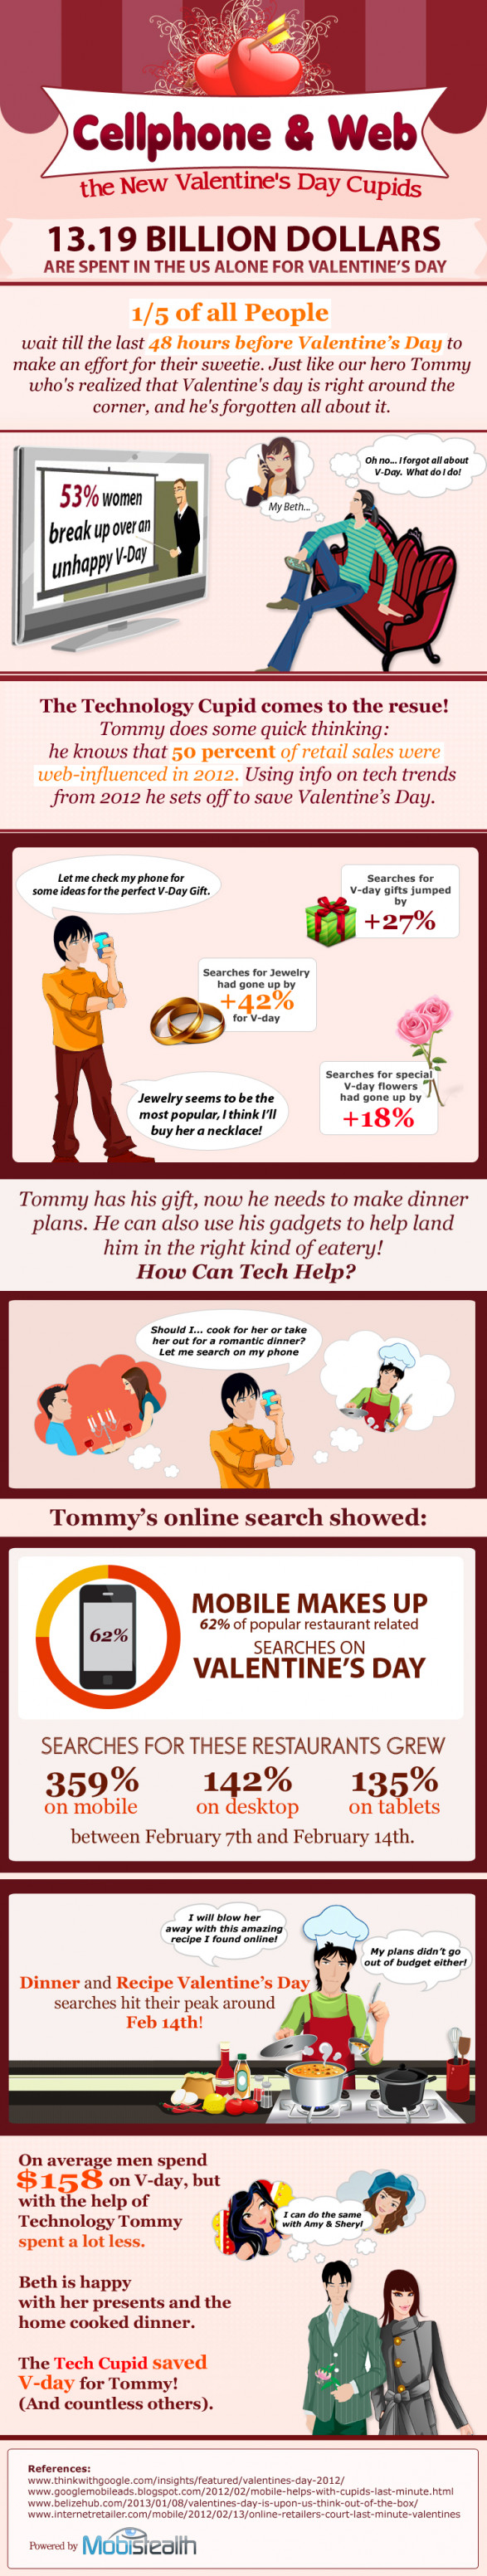 Tech Saves Valentine�s Day! Do You Need a Little Cupid Love?